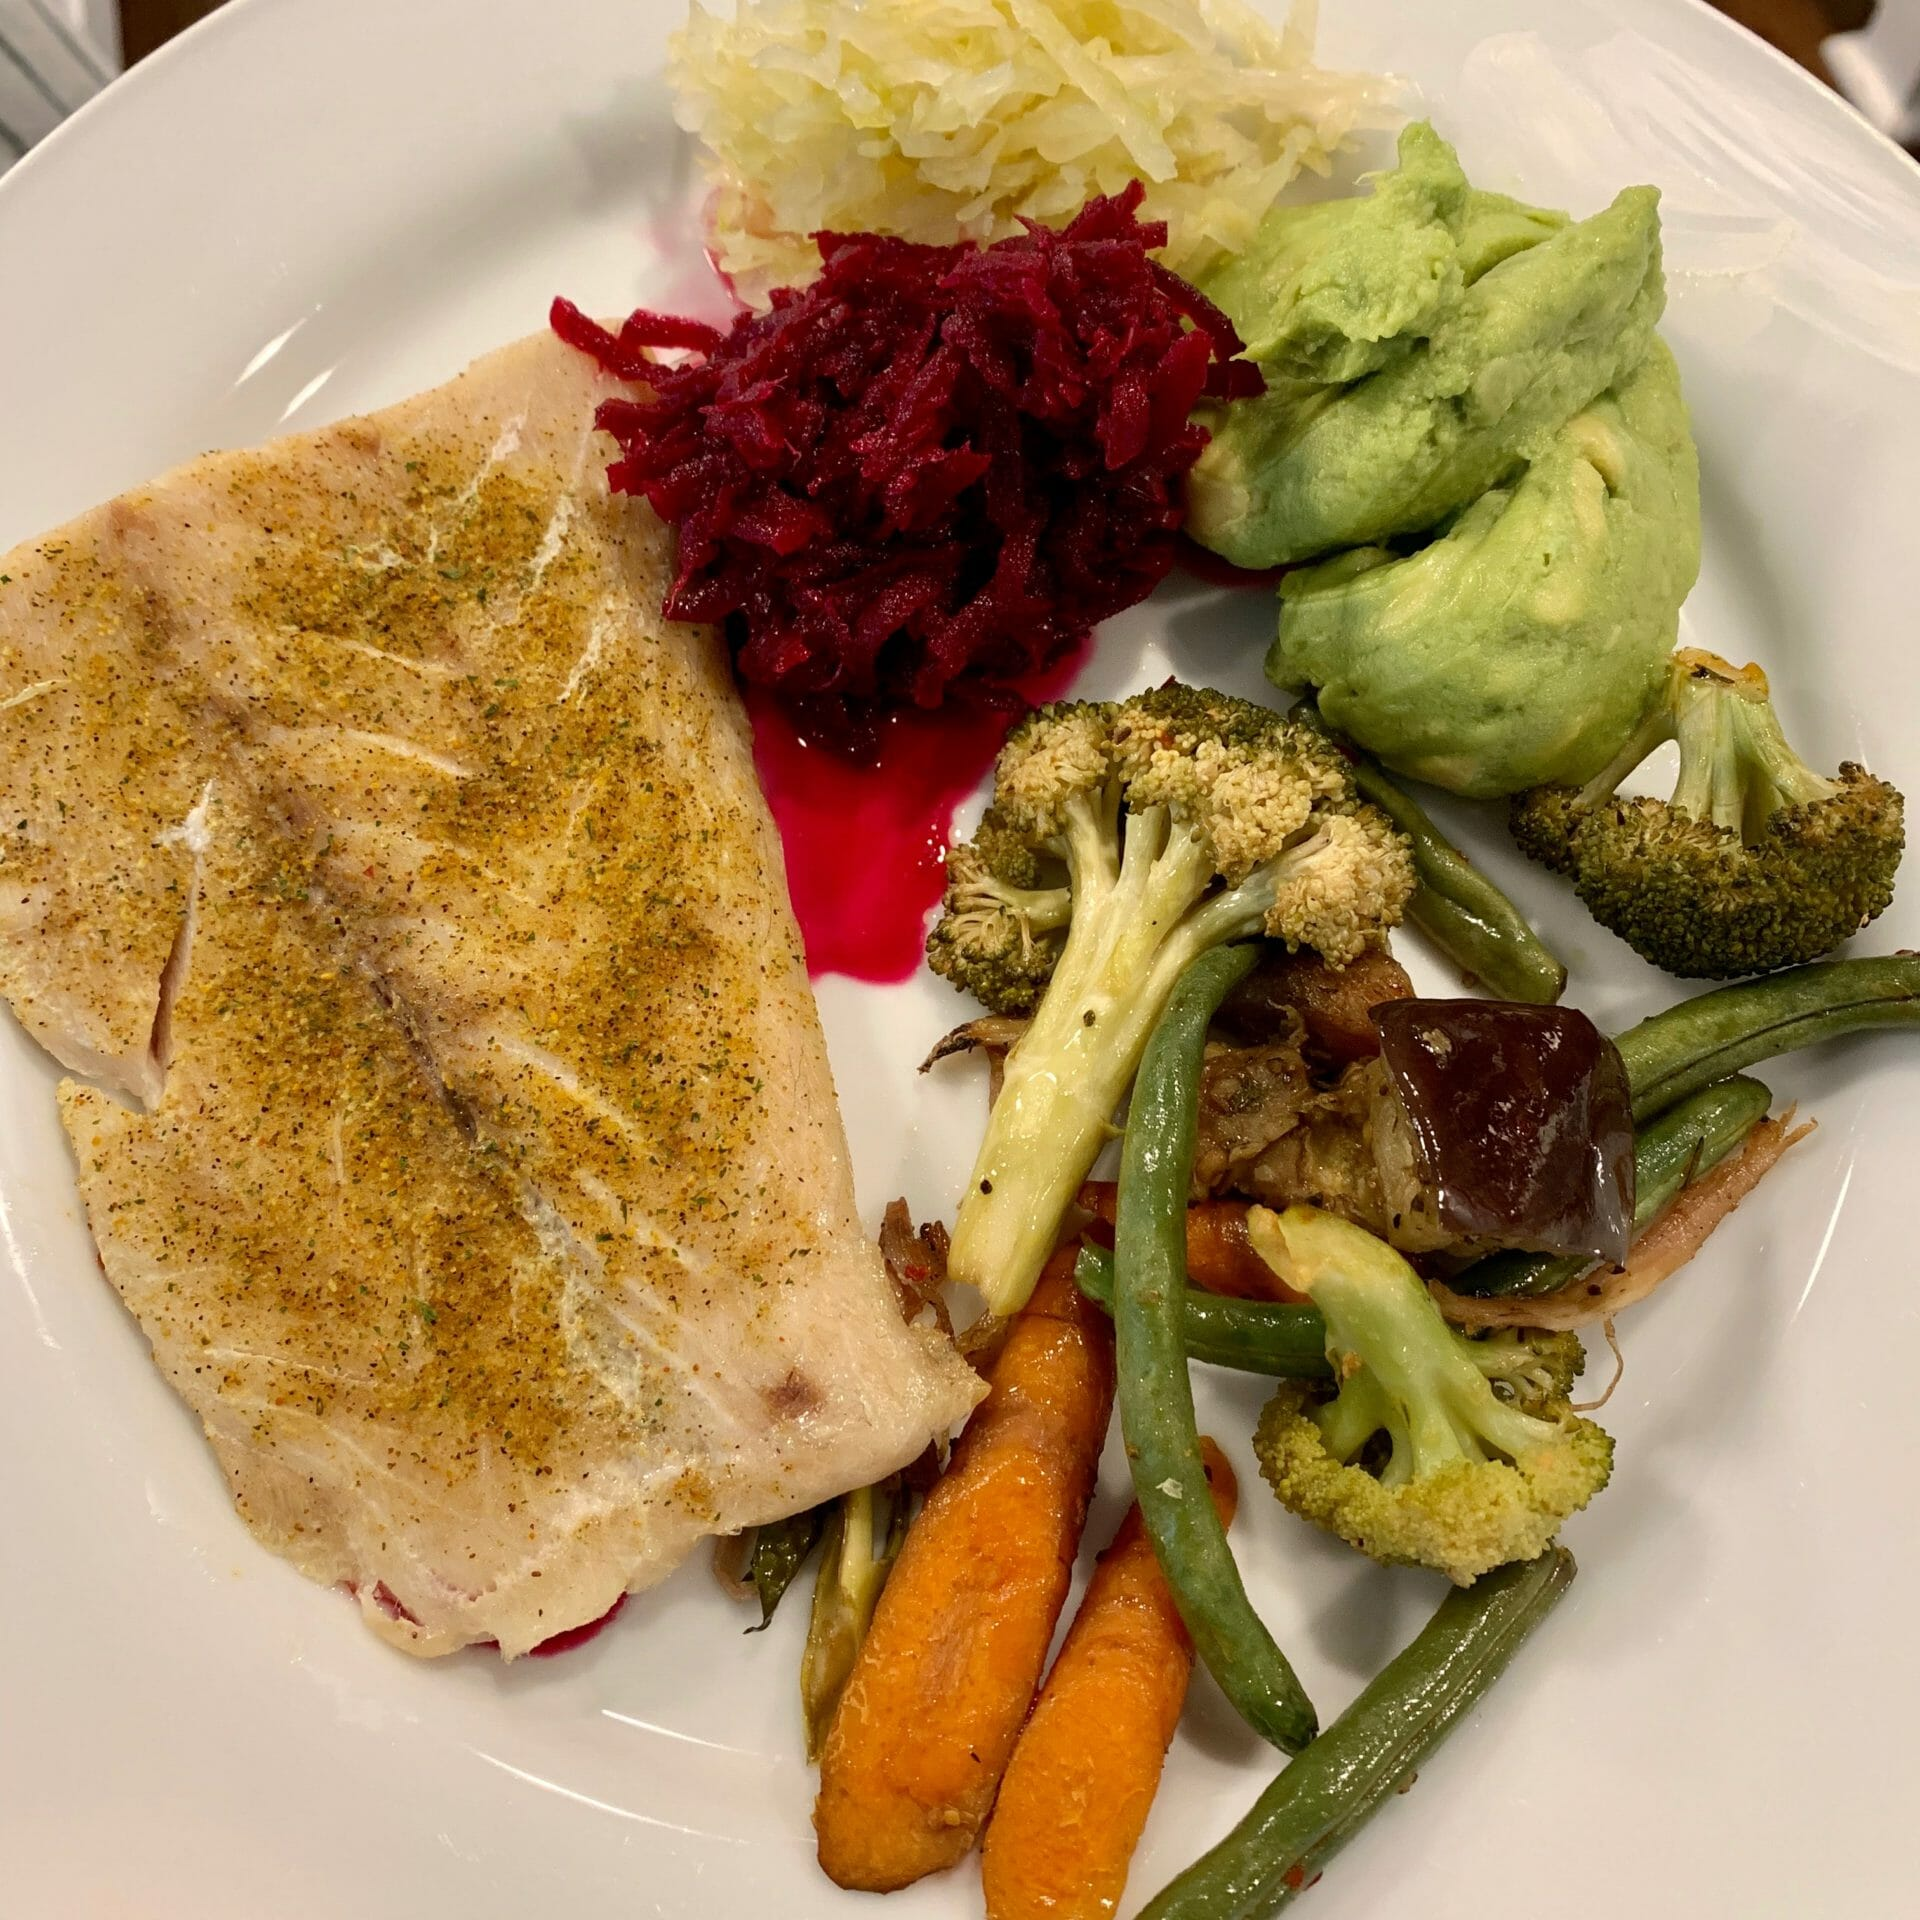 Steamed fish with carrots, broccoli, green beans, eggplant, sauerkraut, fermented beets and guacamole